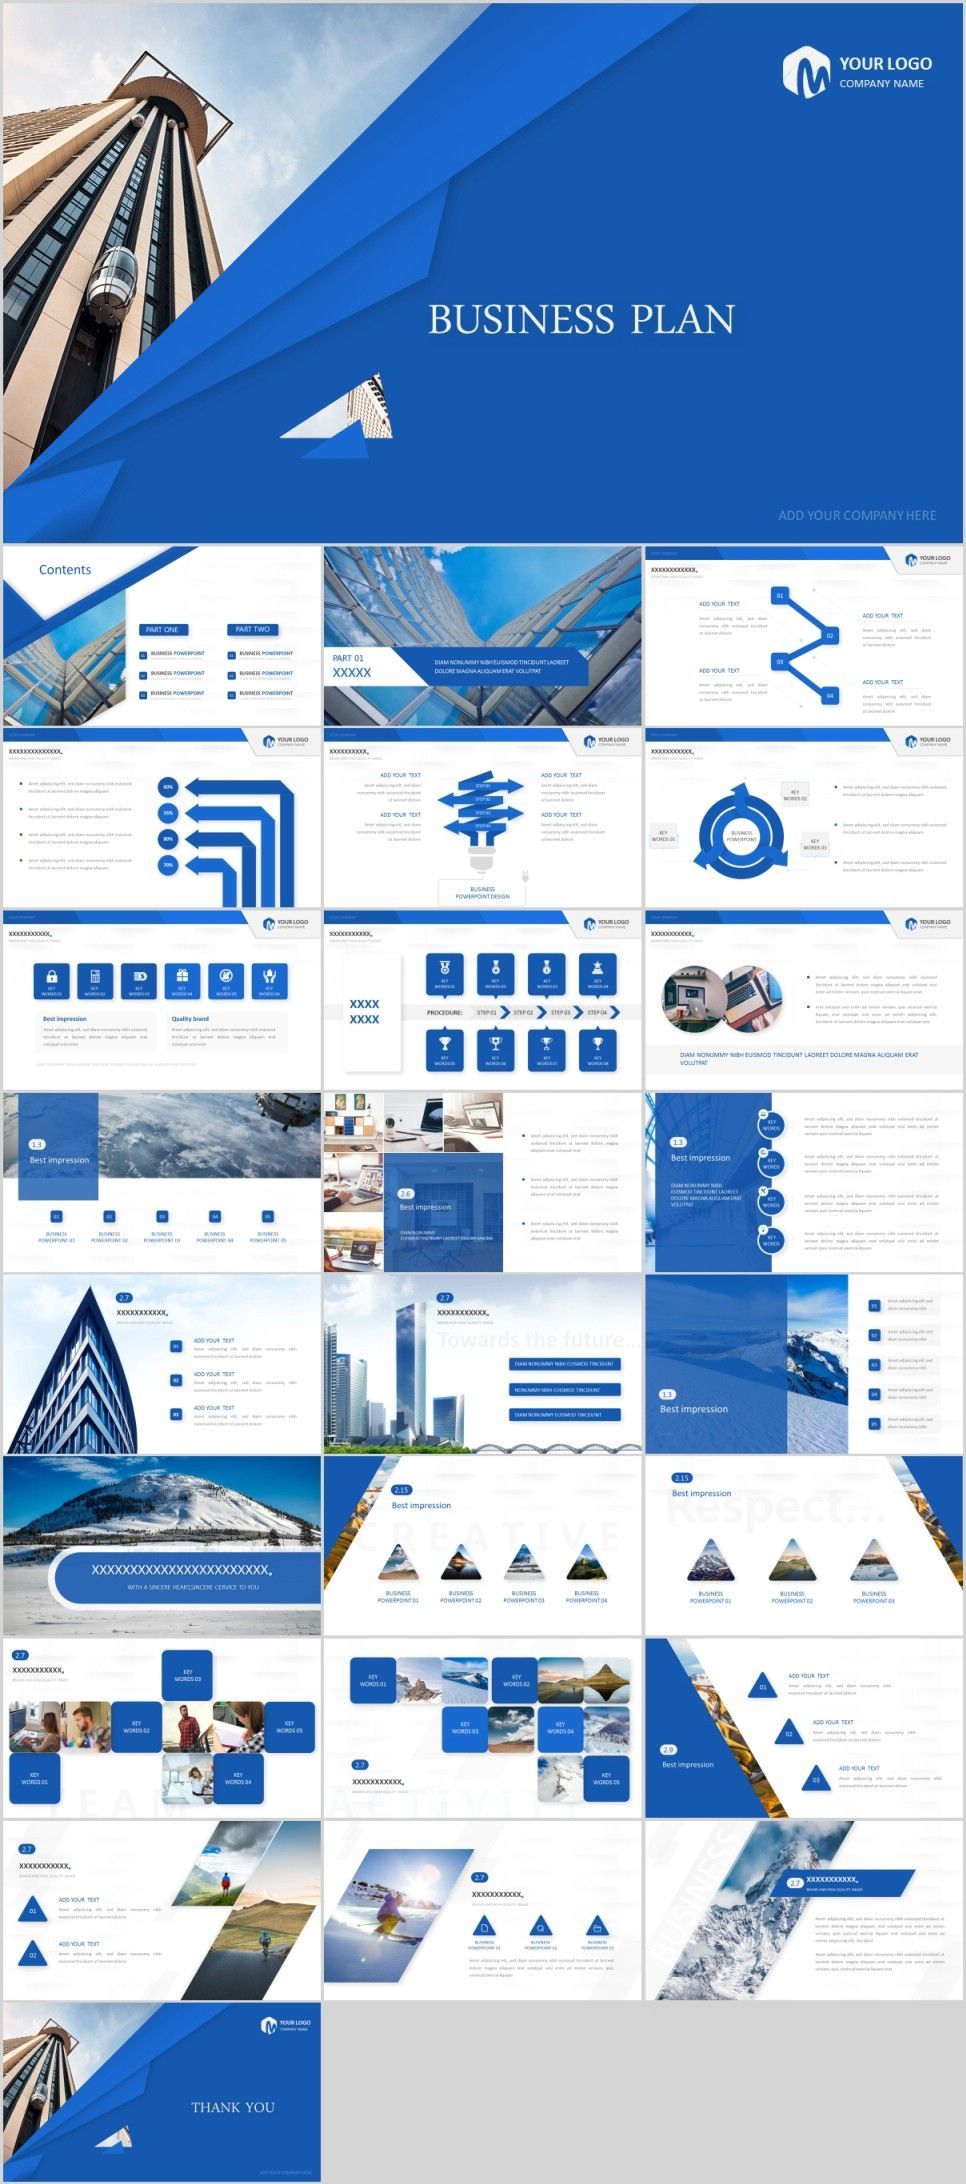 26 Blue Creative Business Plan PowerPoint templateThe highest quality PowerPoint Templates and Keynote Templates download